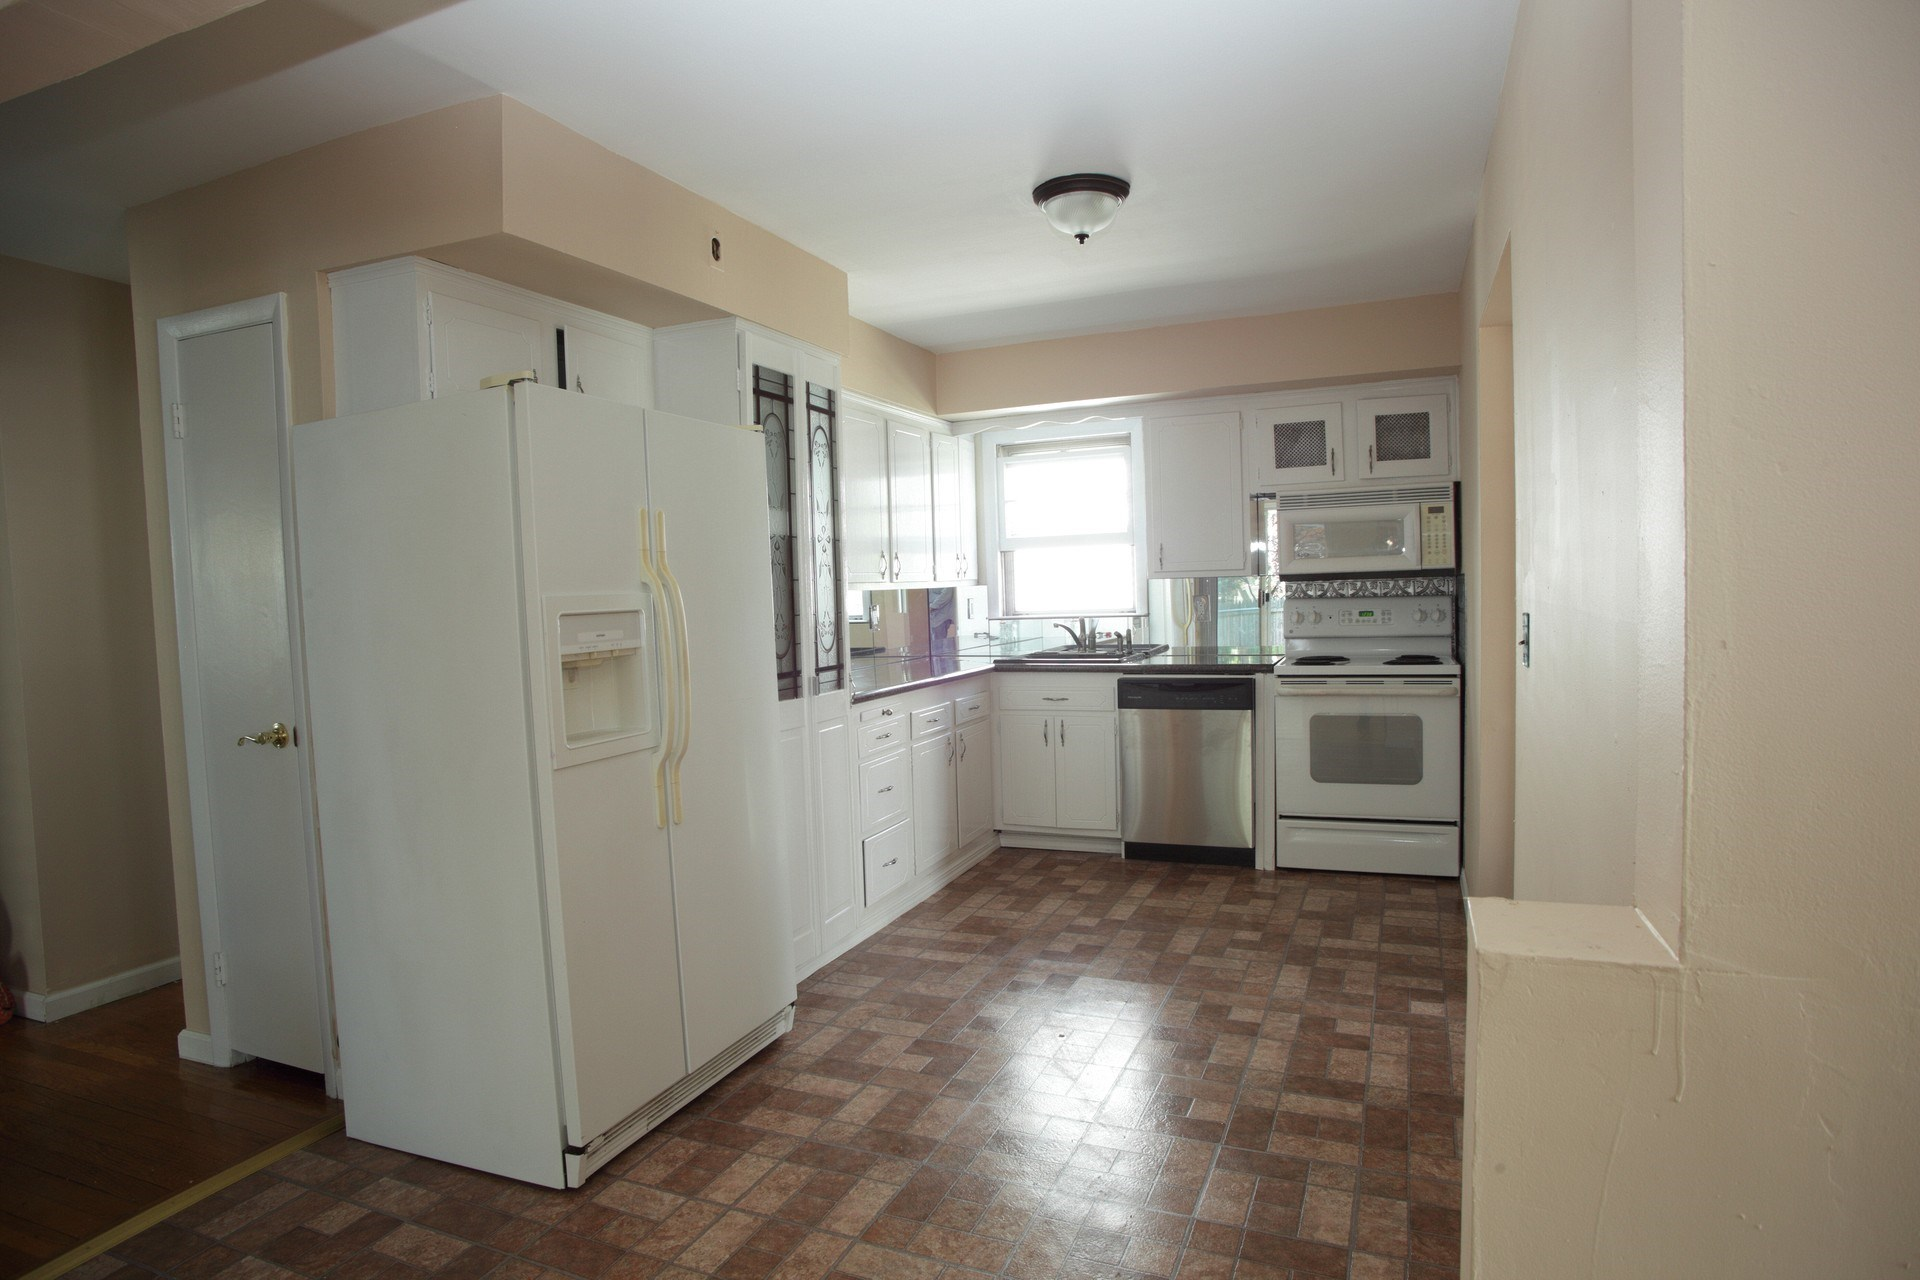 3 Bedroom Apartments For Rent With Utilities Included 3 Bedroom Apartment For Rent  All Utilities Included  No Fees .